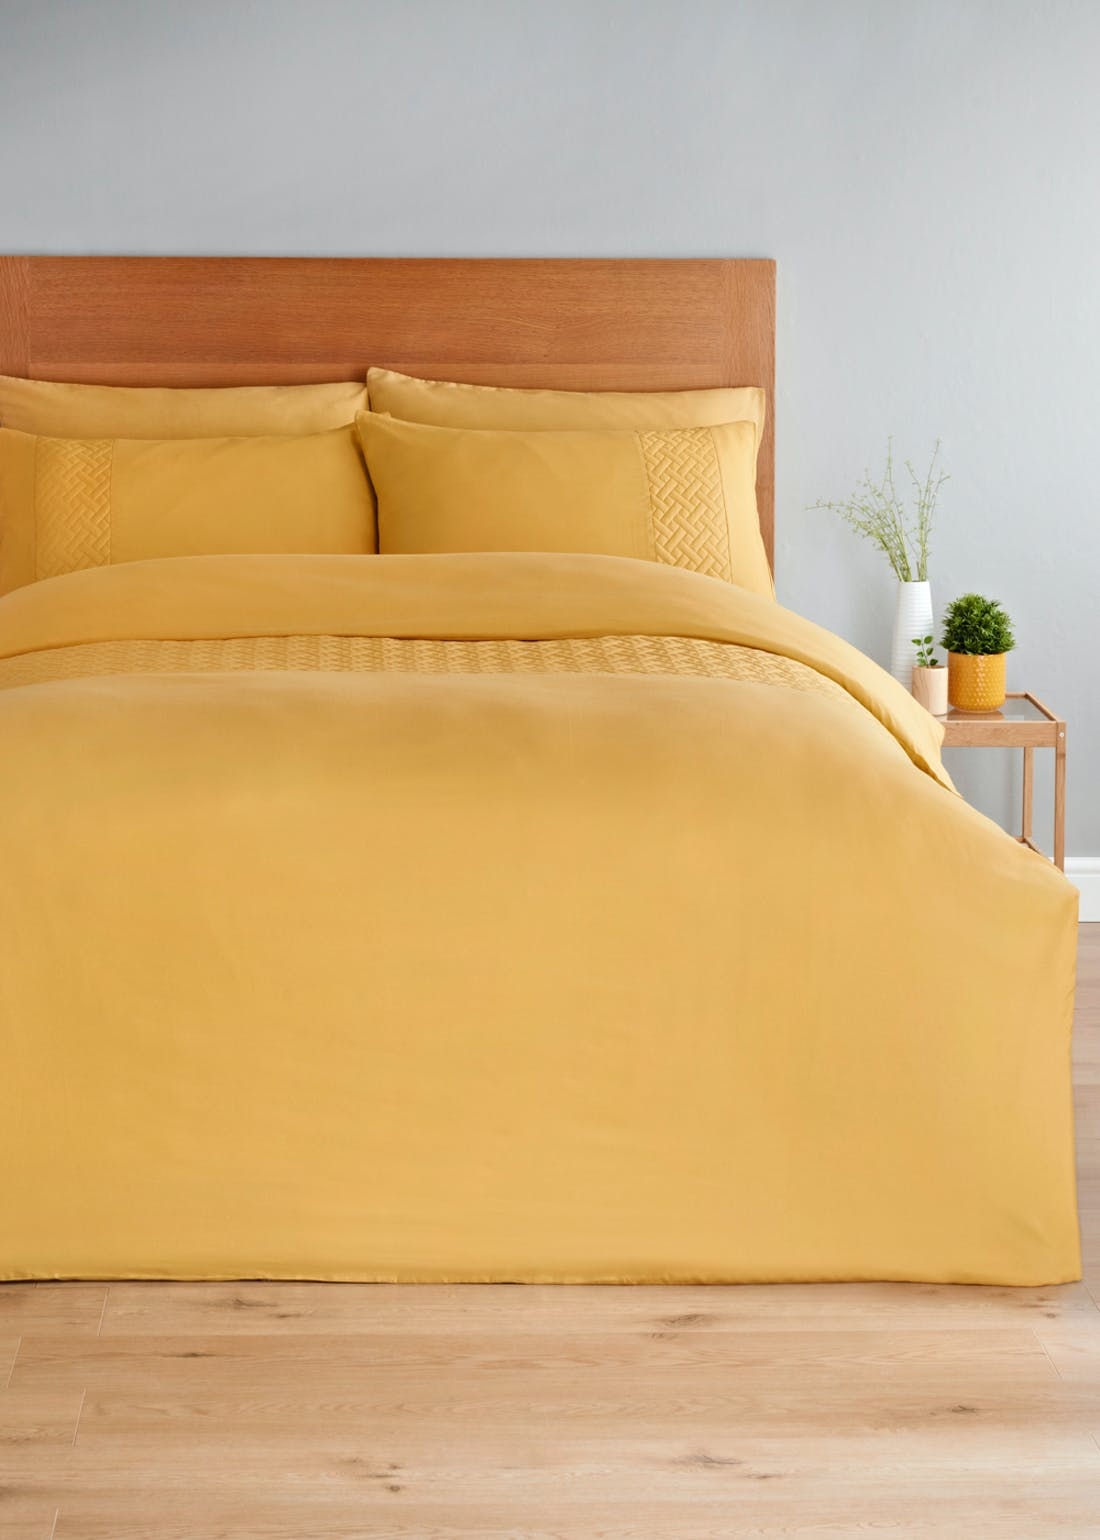 Pinsonic Panel Duvet Cover & Fitted Sheet Set